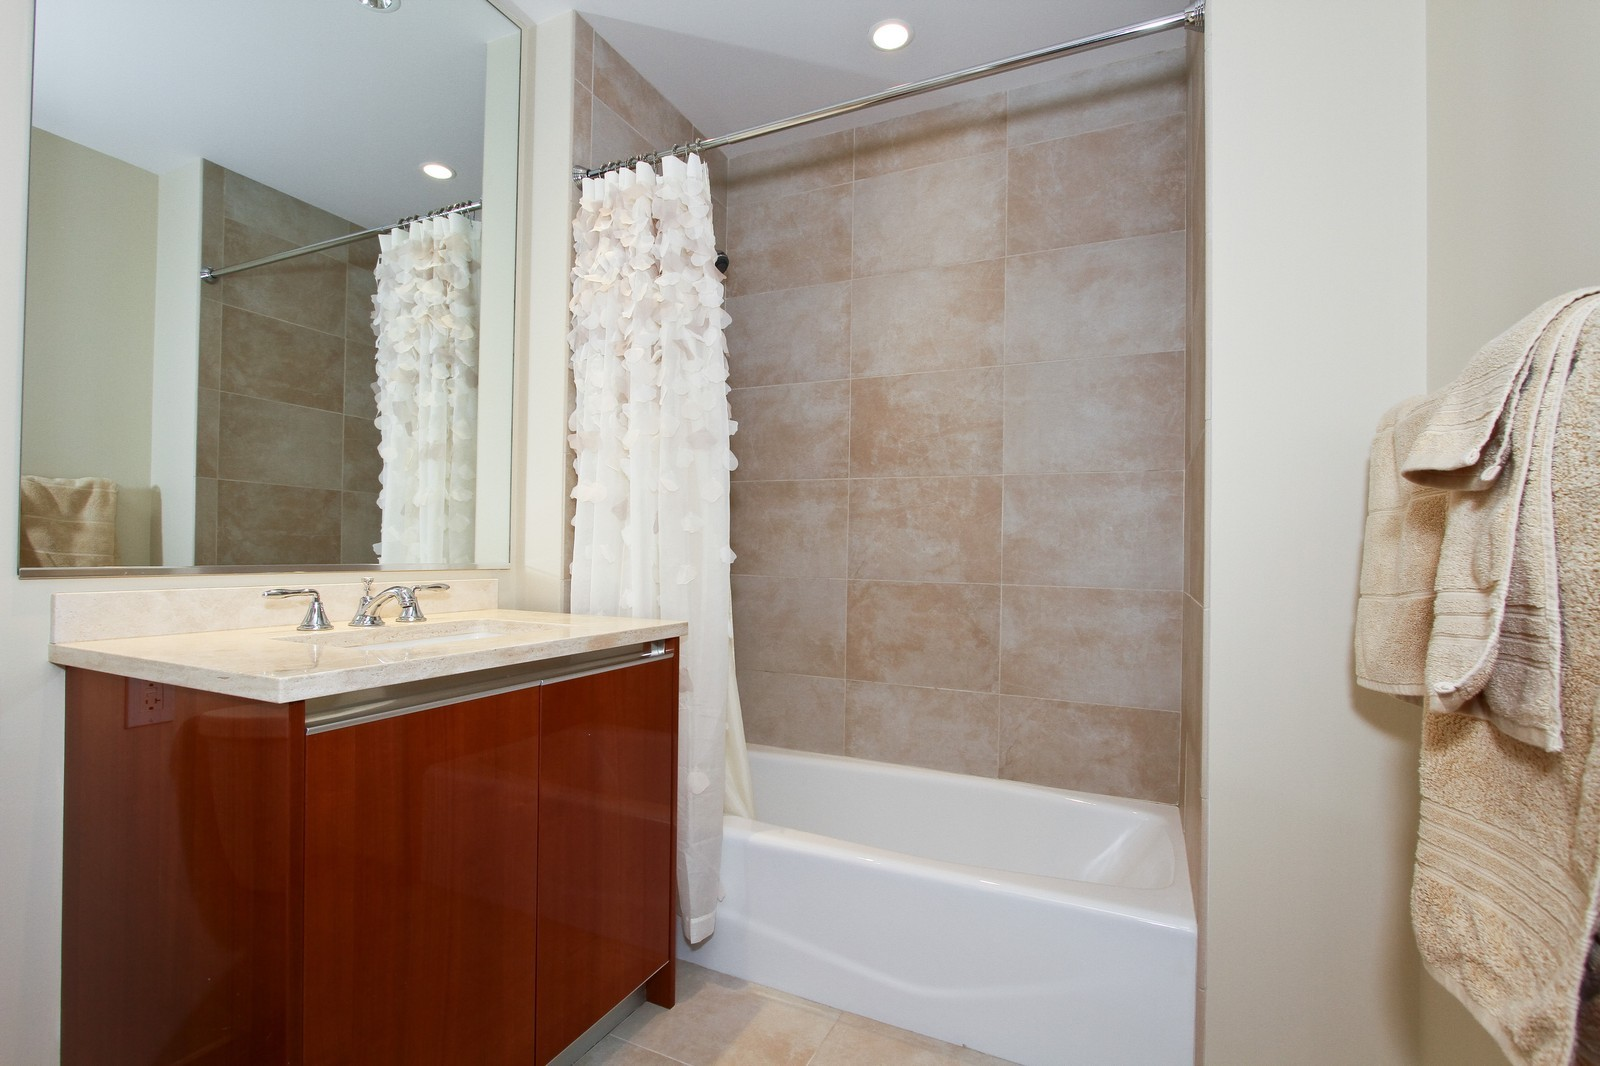 Real Estate Photography - 60 E Monroe, 6501, Chicago, IL, 60603 - 2nd Bathroom